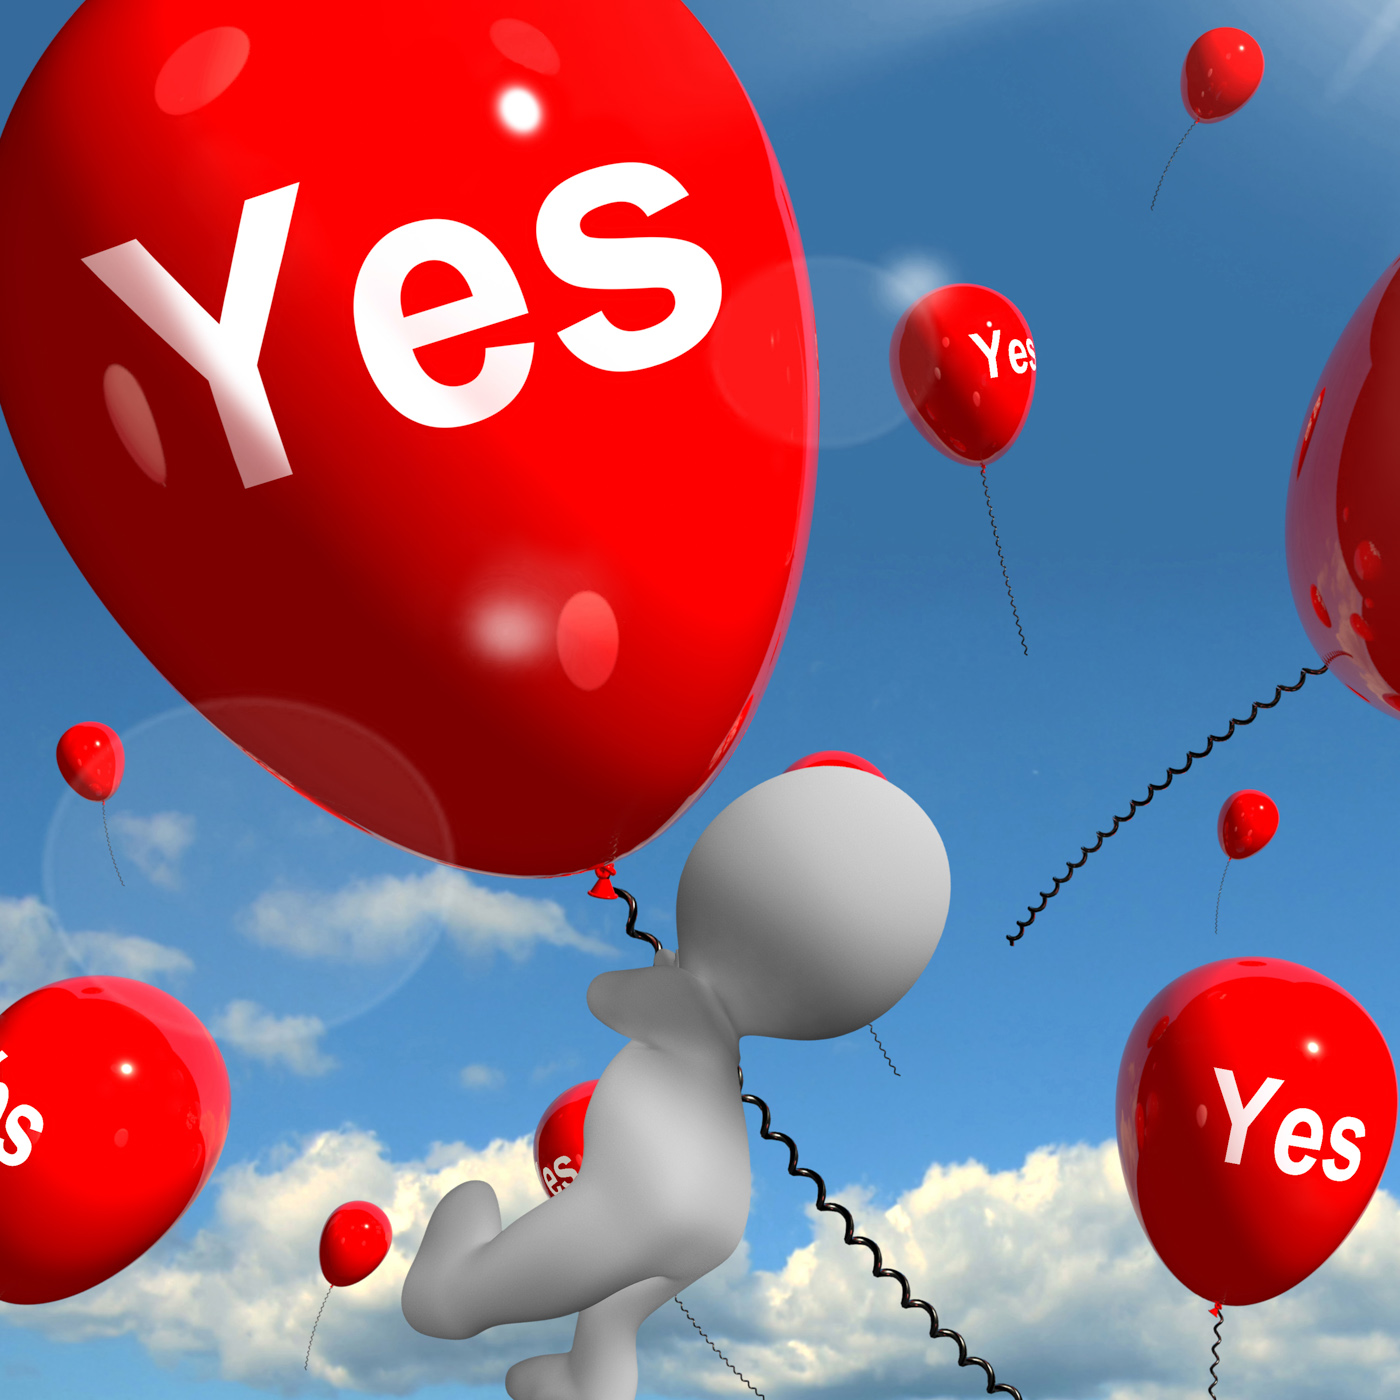 Yes balloons means certainty and affirmative approval photo